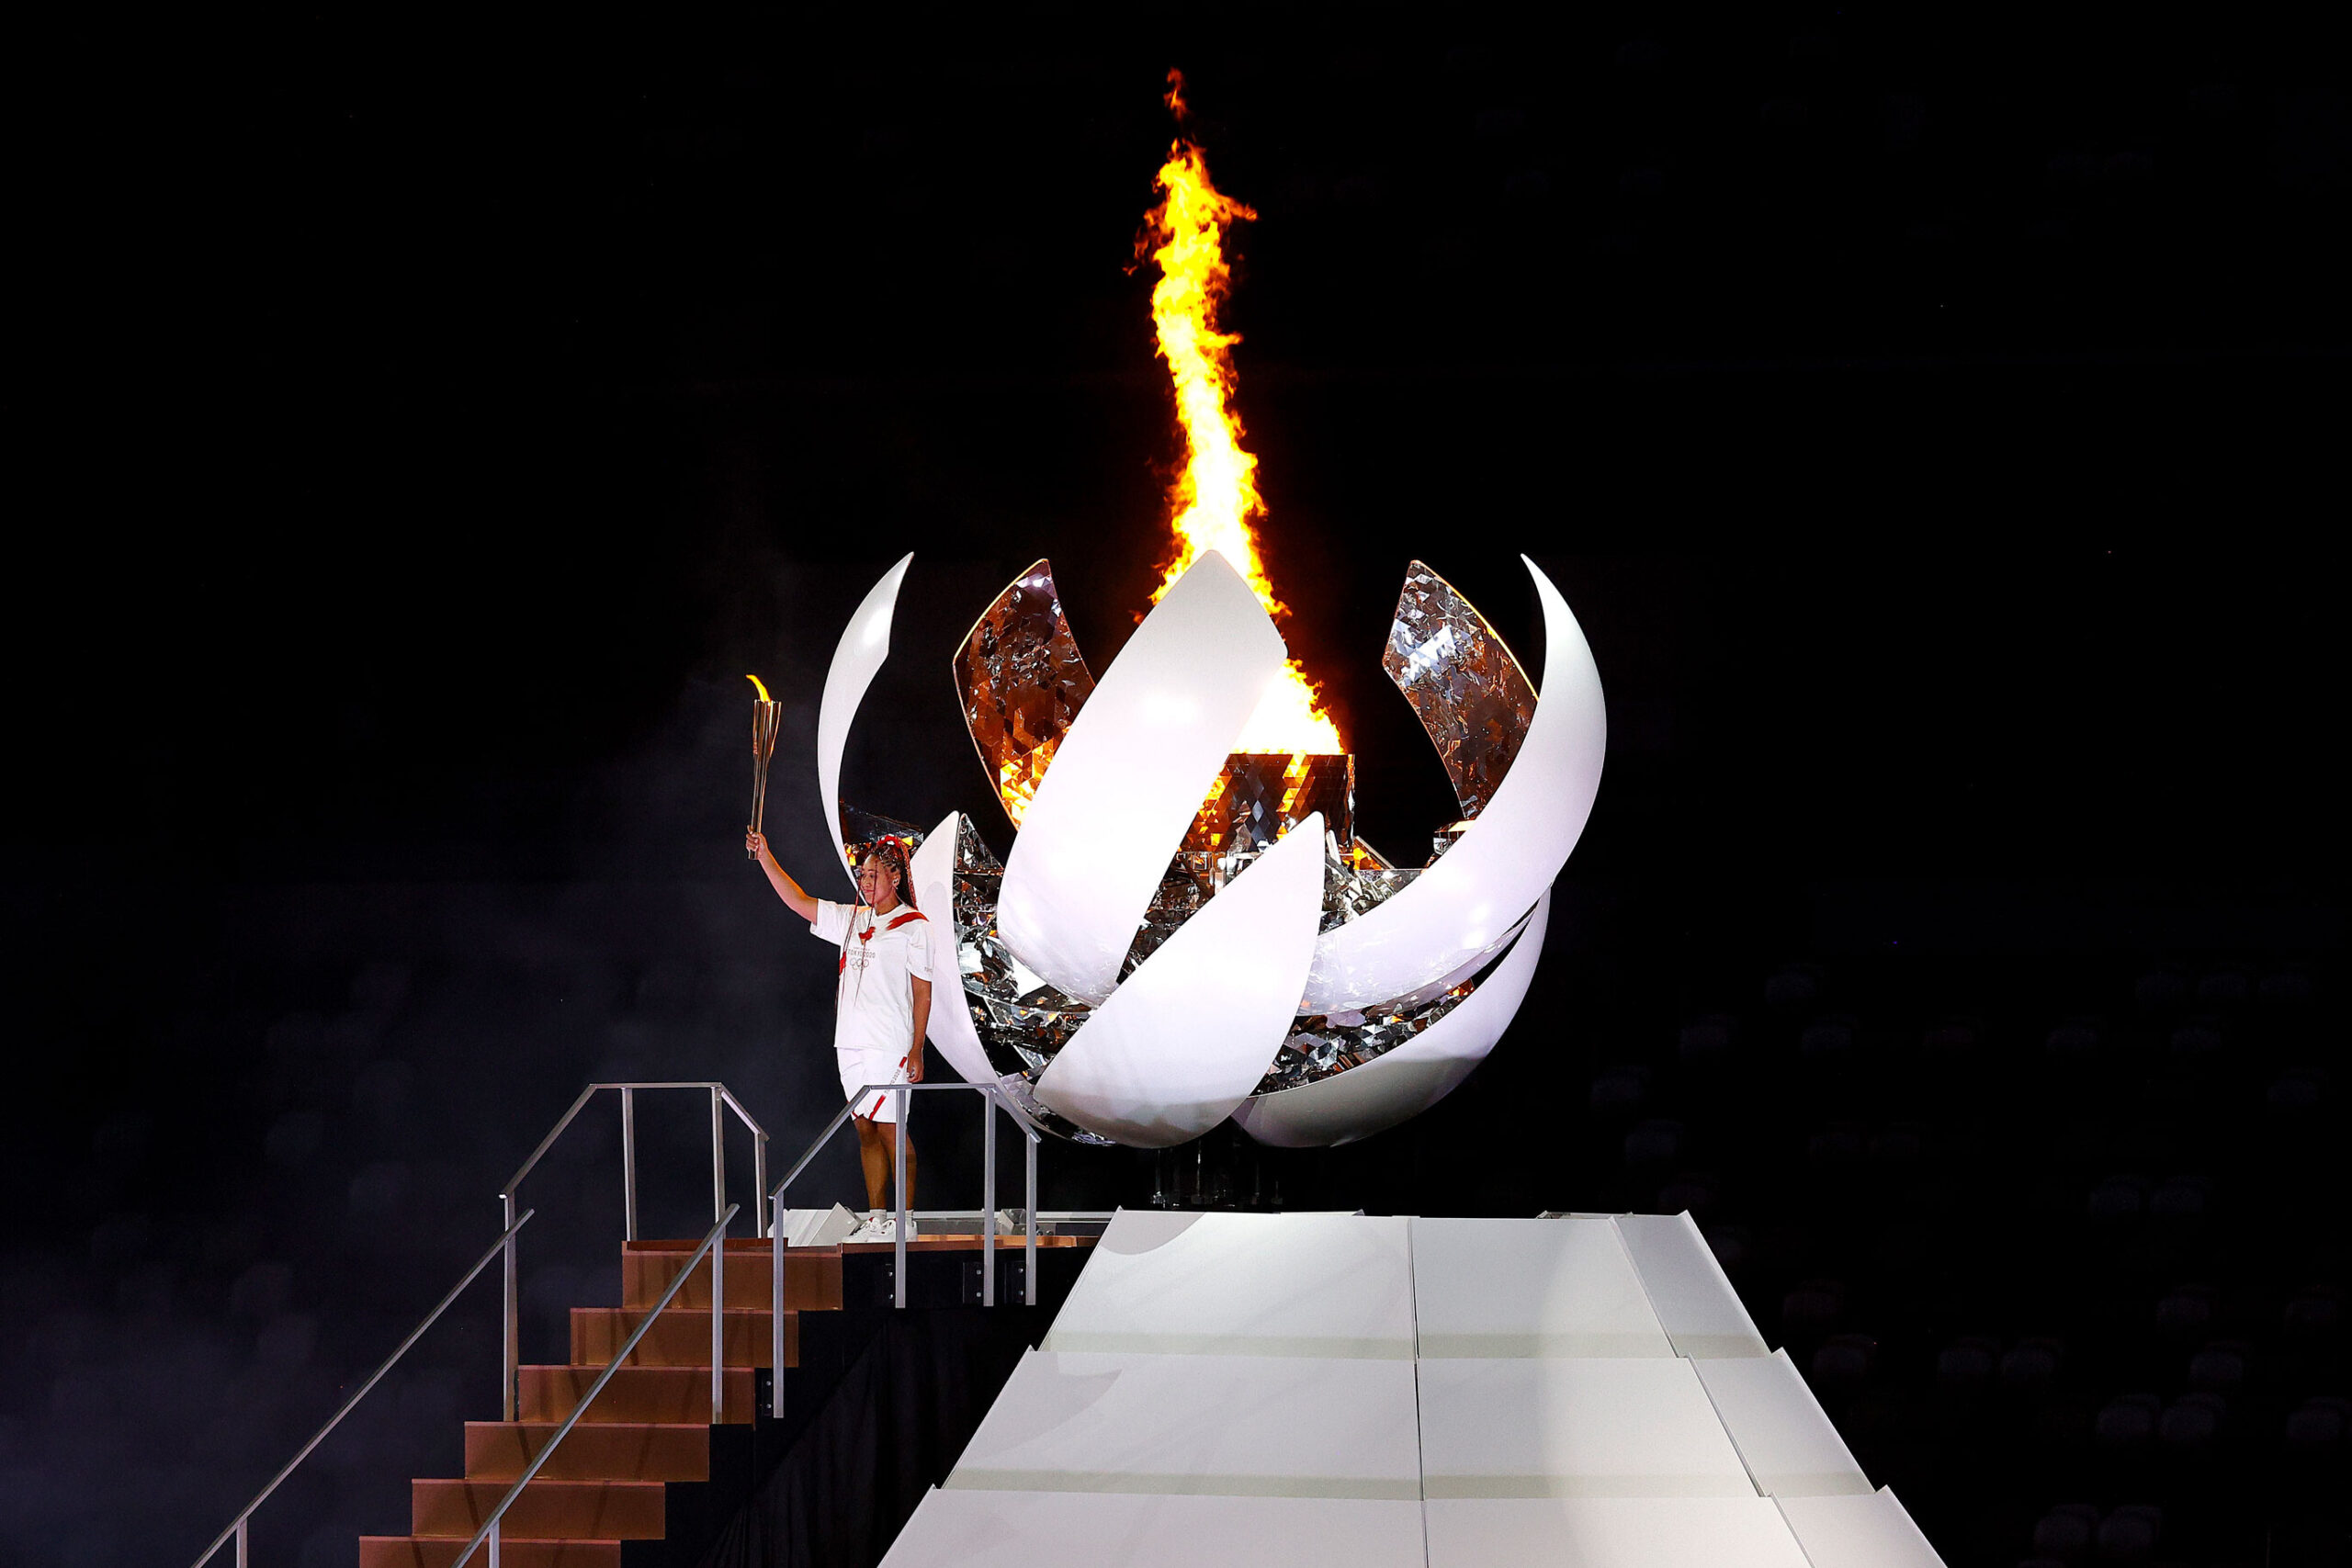 <i>Maddie Meyer/Getty Images</i><br/>Naomi Osaka of Team Japan lights the Olympic cauldron with the Olympic torch during the opening ceremony of the Tokyo 2020 Olympic Games on July 23.